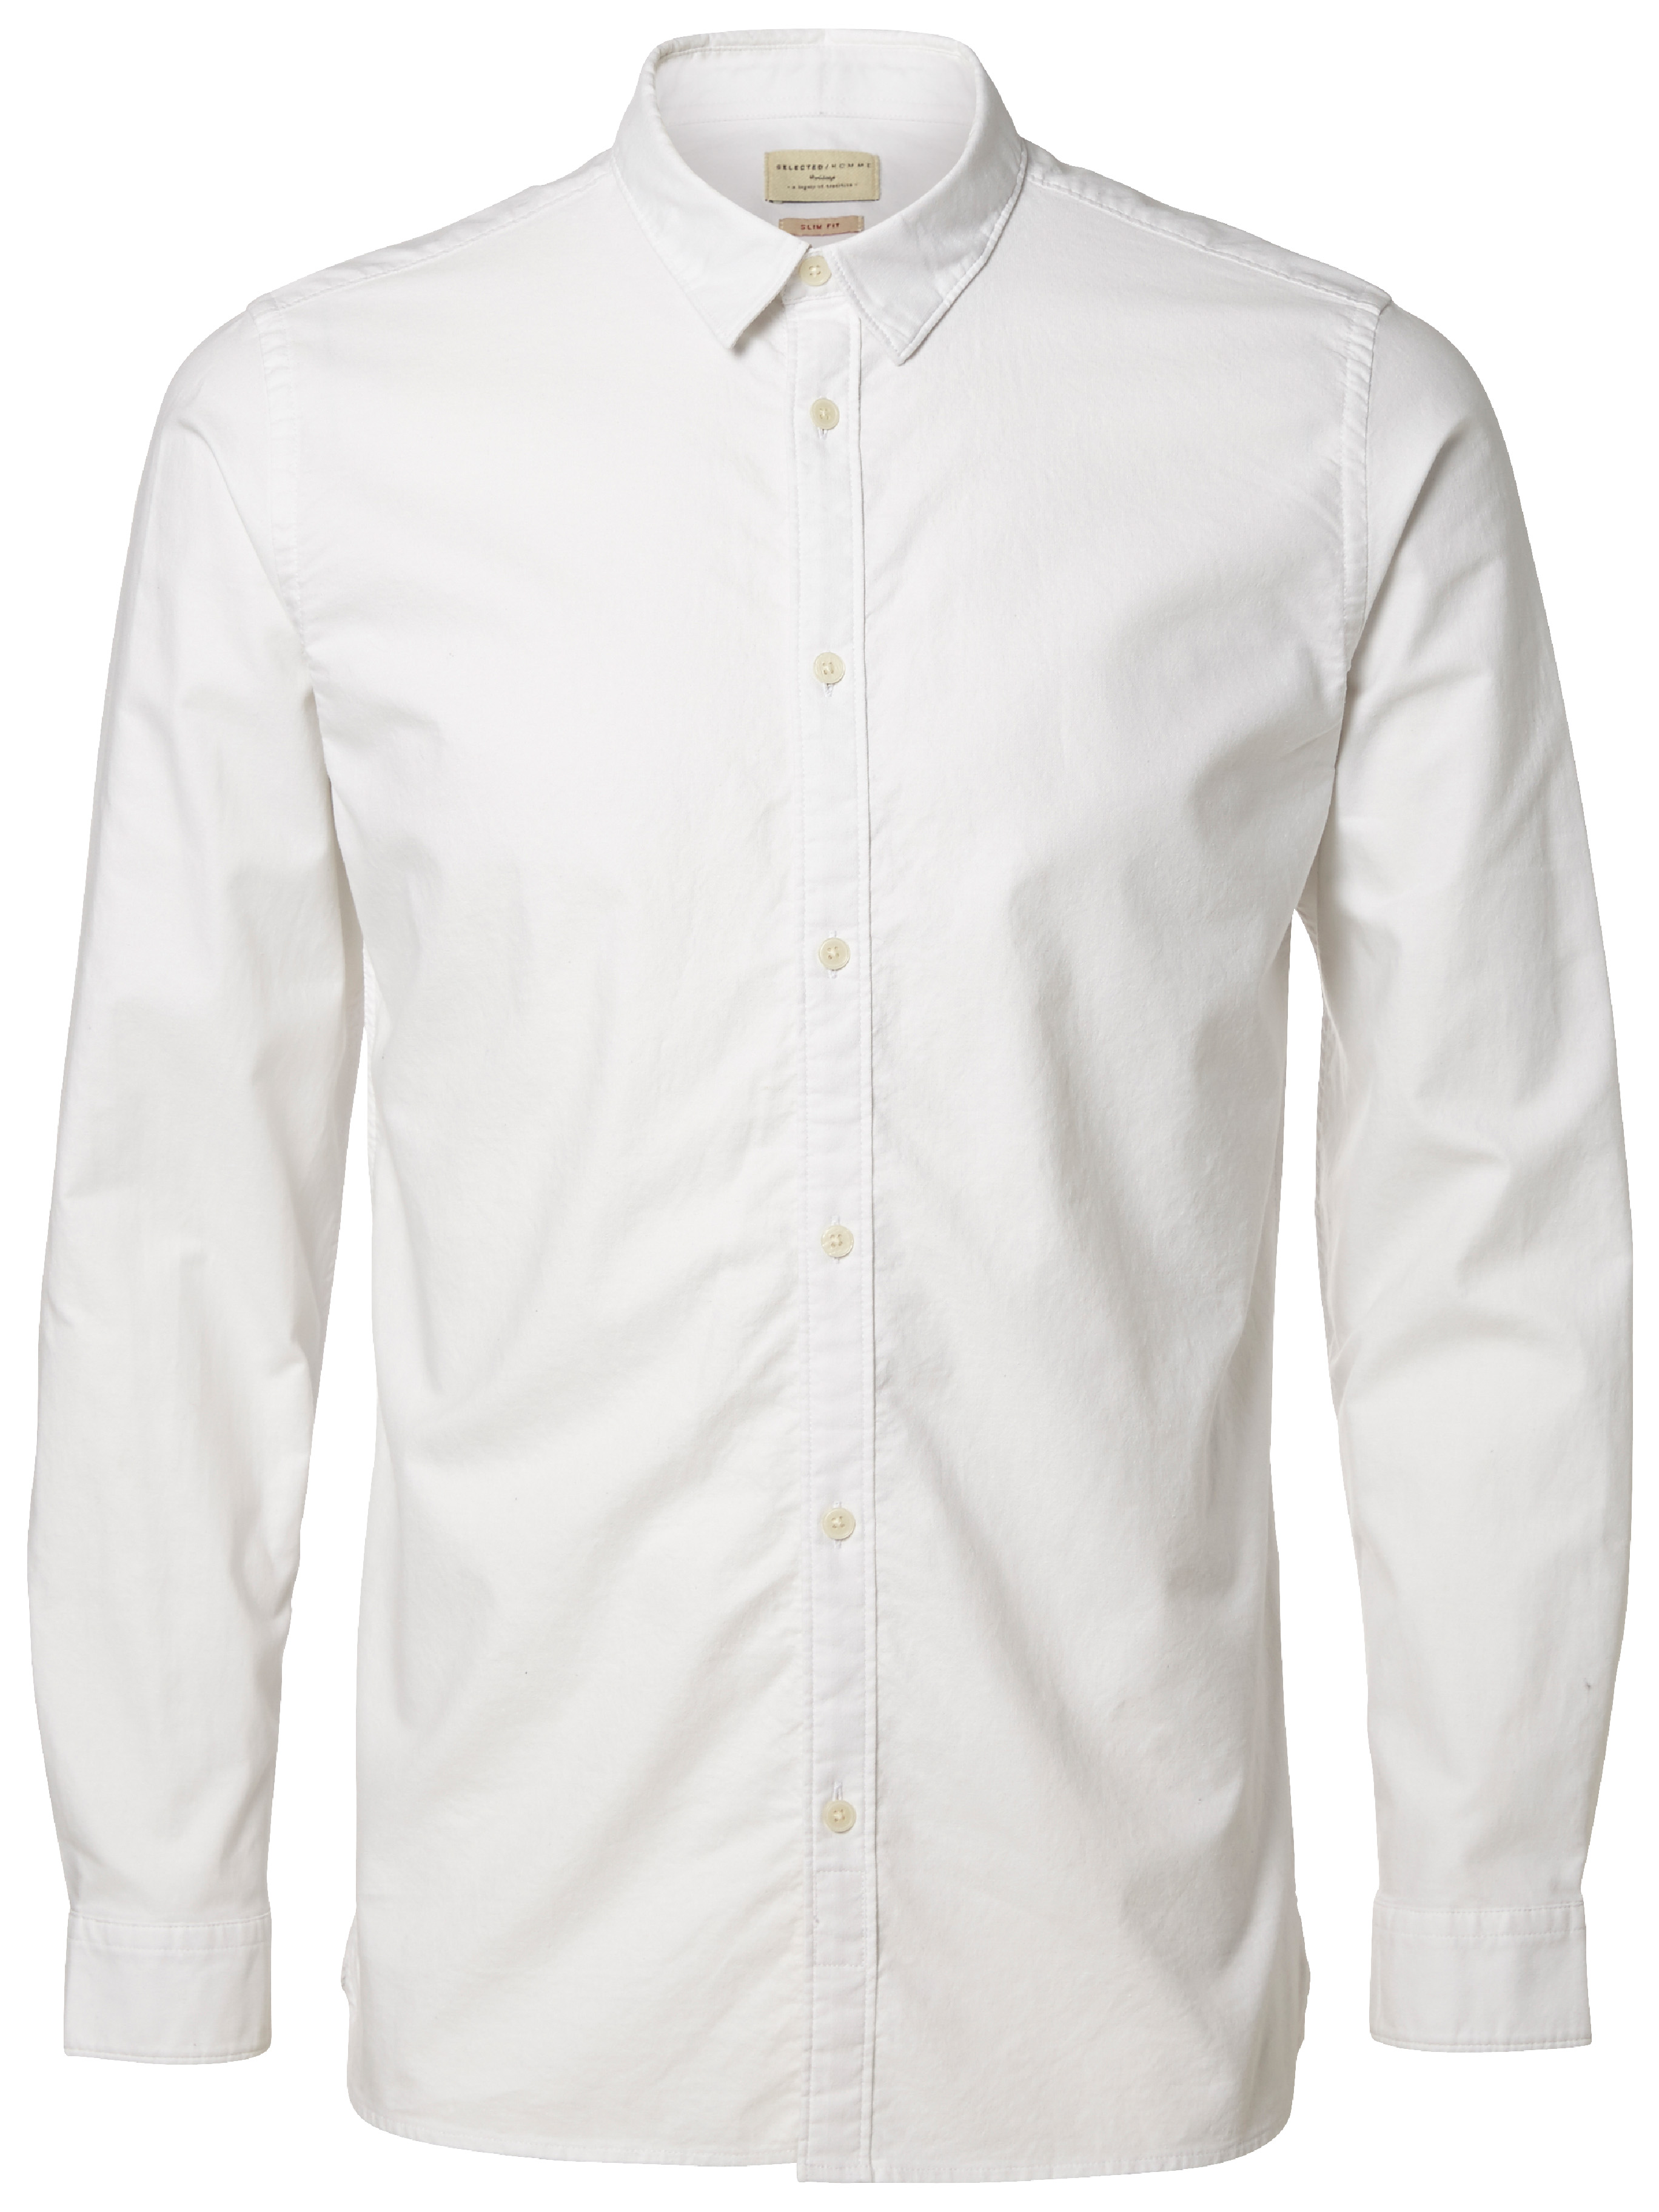 Selected Bright White SHHONEVINCE SHIRT LS